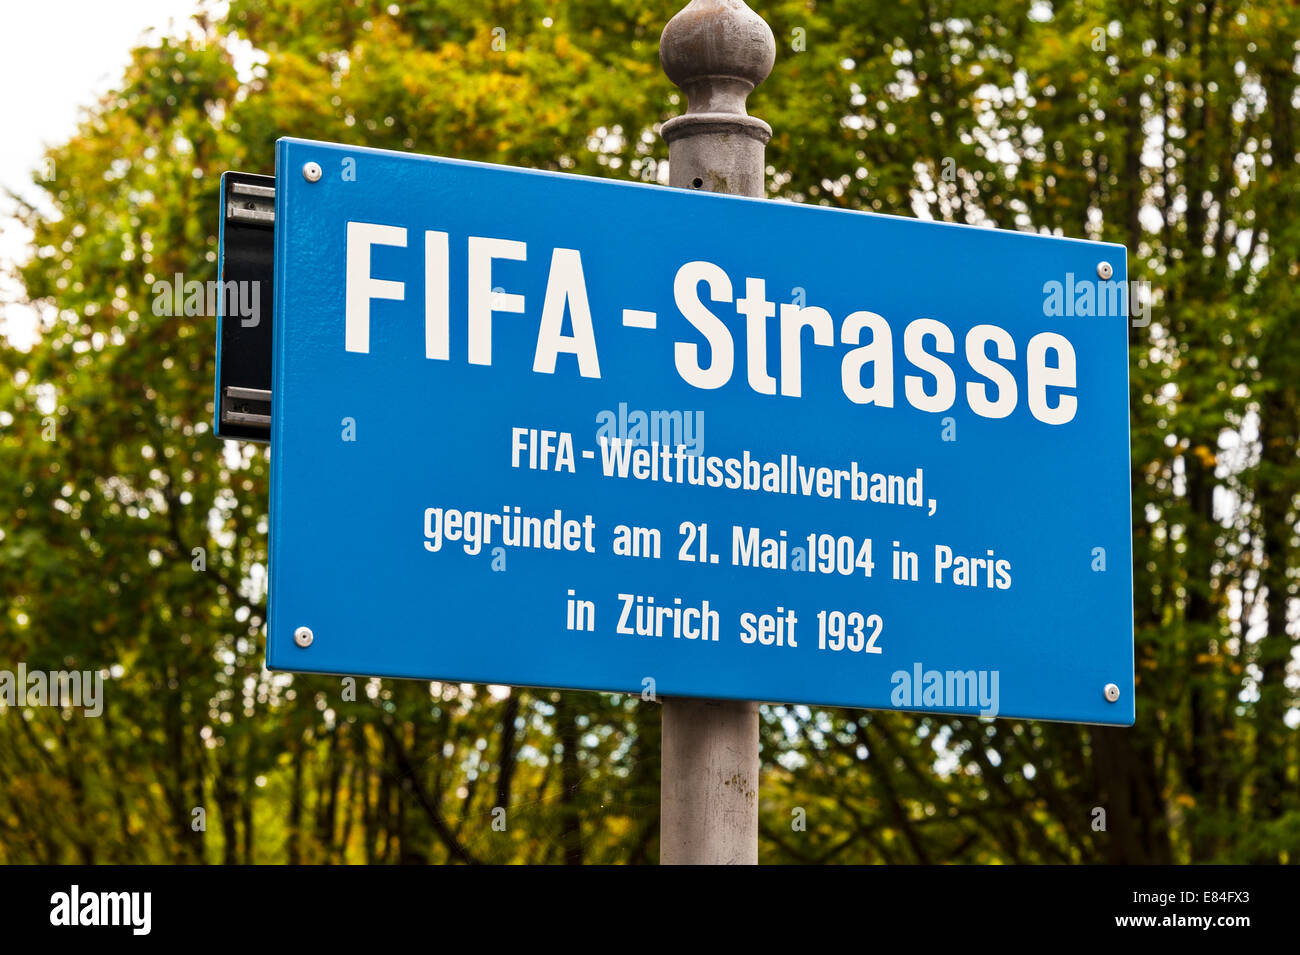 Street sign on the road leading up to the World Football Federation's (FIFA's) headquarters in Zurich, Switzerland. - Stock Image